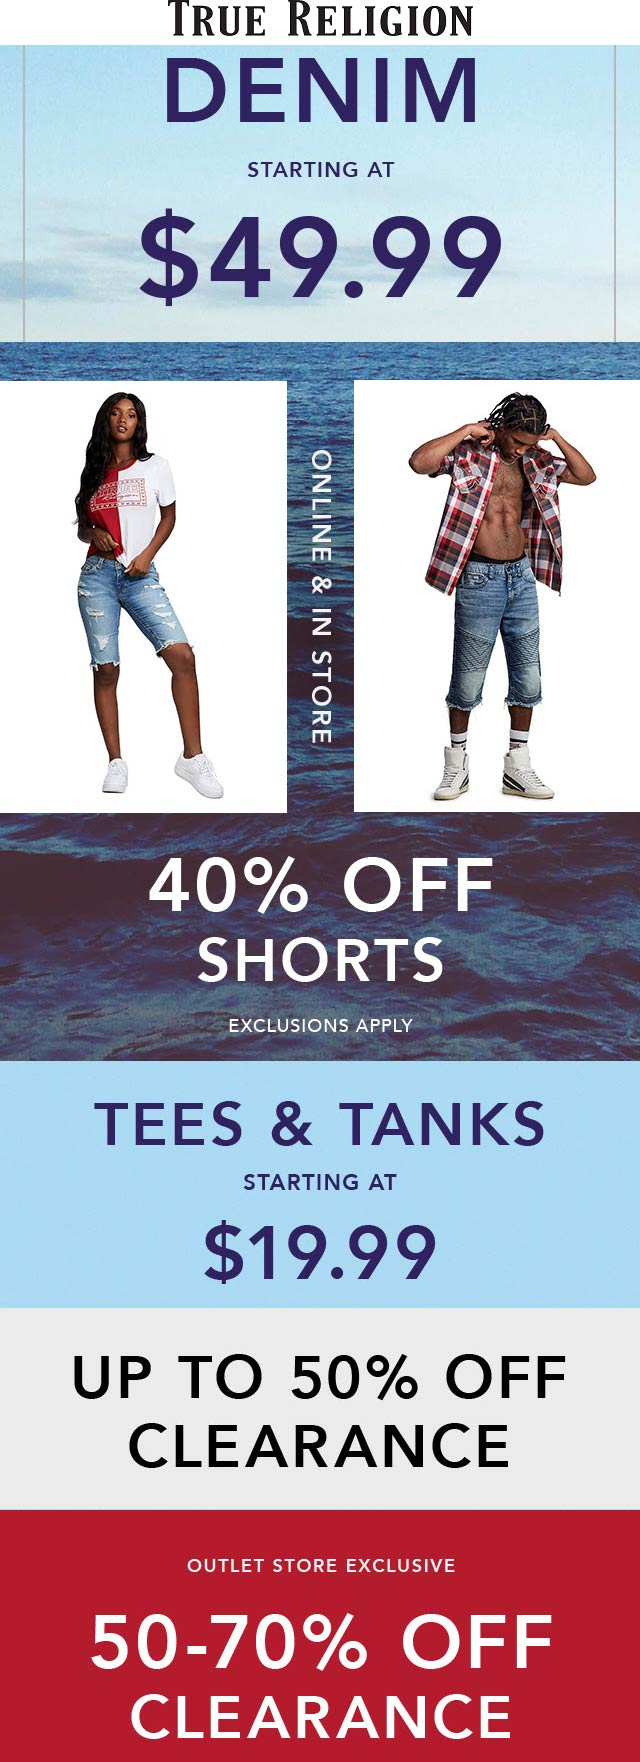 TrueReligion.com Promo Coupon 40% off shorts at True Religion, ditto online